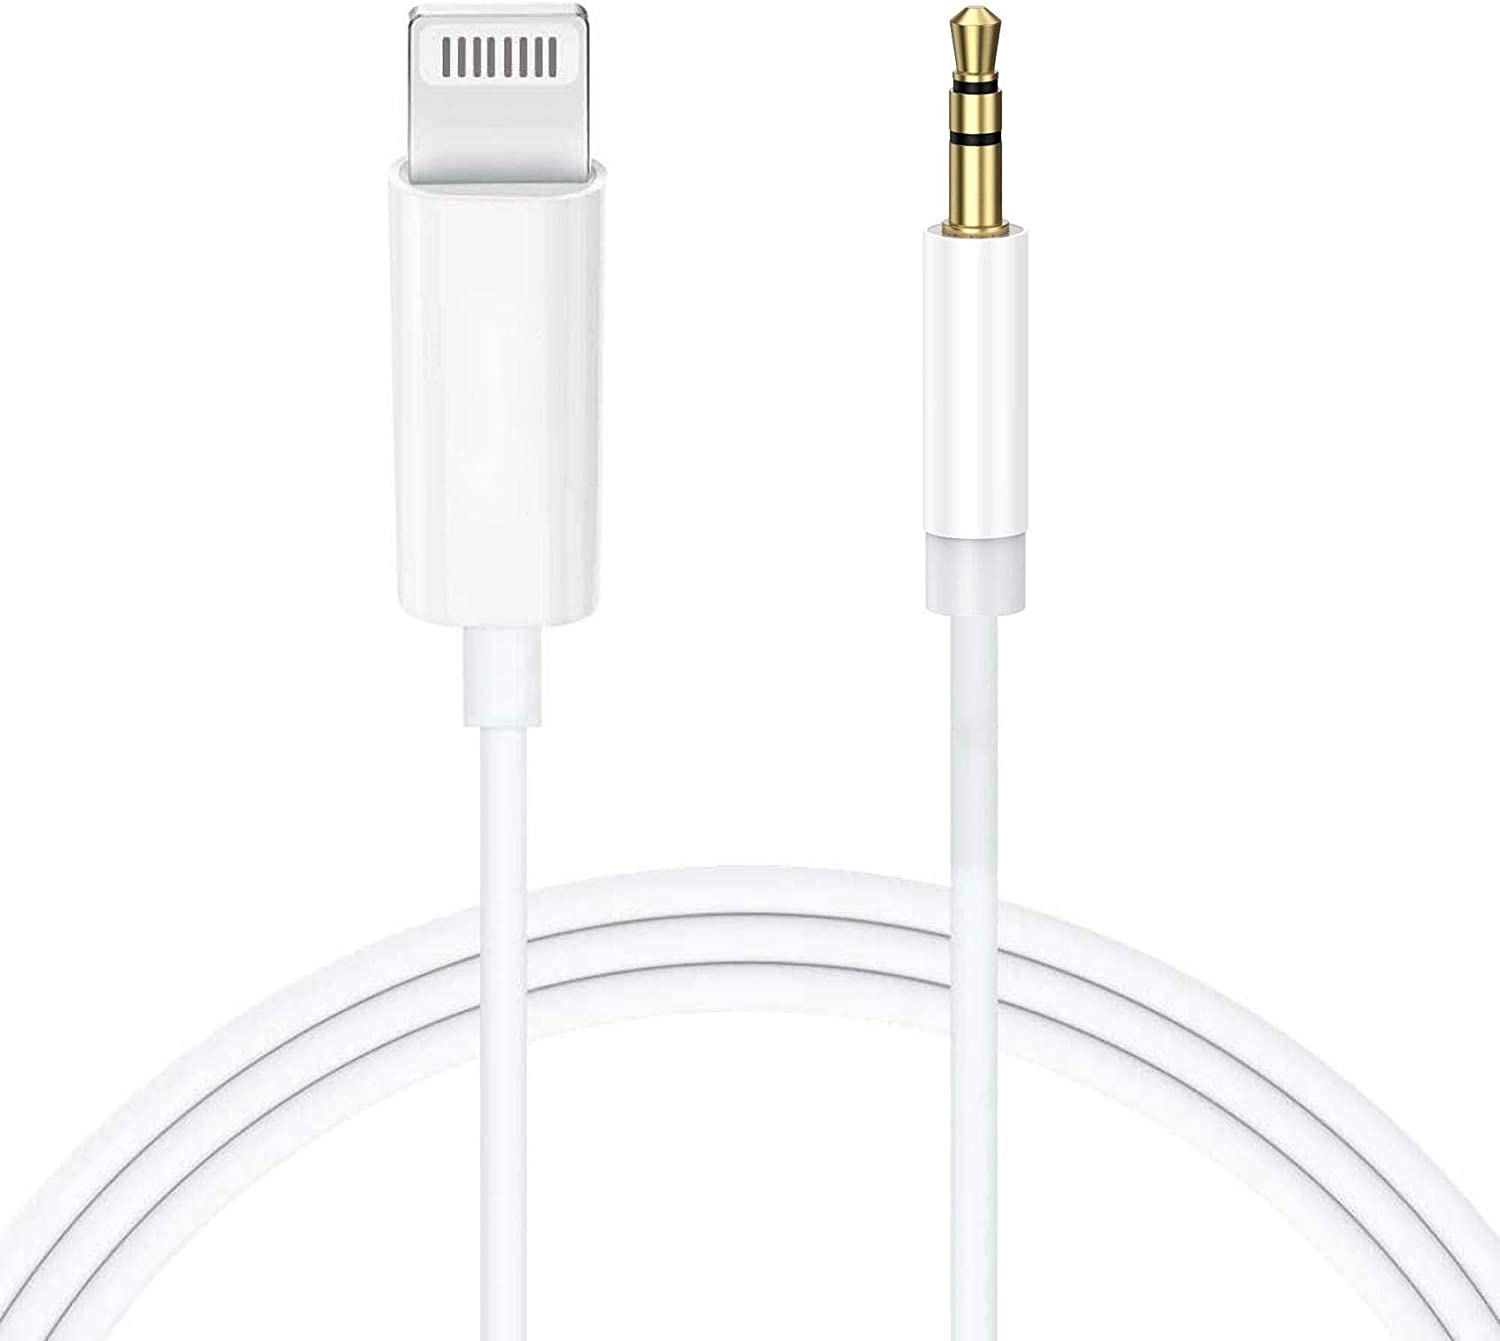 [Apple MFi Certified] Aux Cord for iPhone, Lightning to 3.5mm Stereo Audio Aux Cable for Car Compatible with iPhone 11/11 Pro/XS/XR/X/8/7/SE/iPad to Car/Home Stereo, Speaker, Headphone - 3.3FT, White